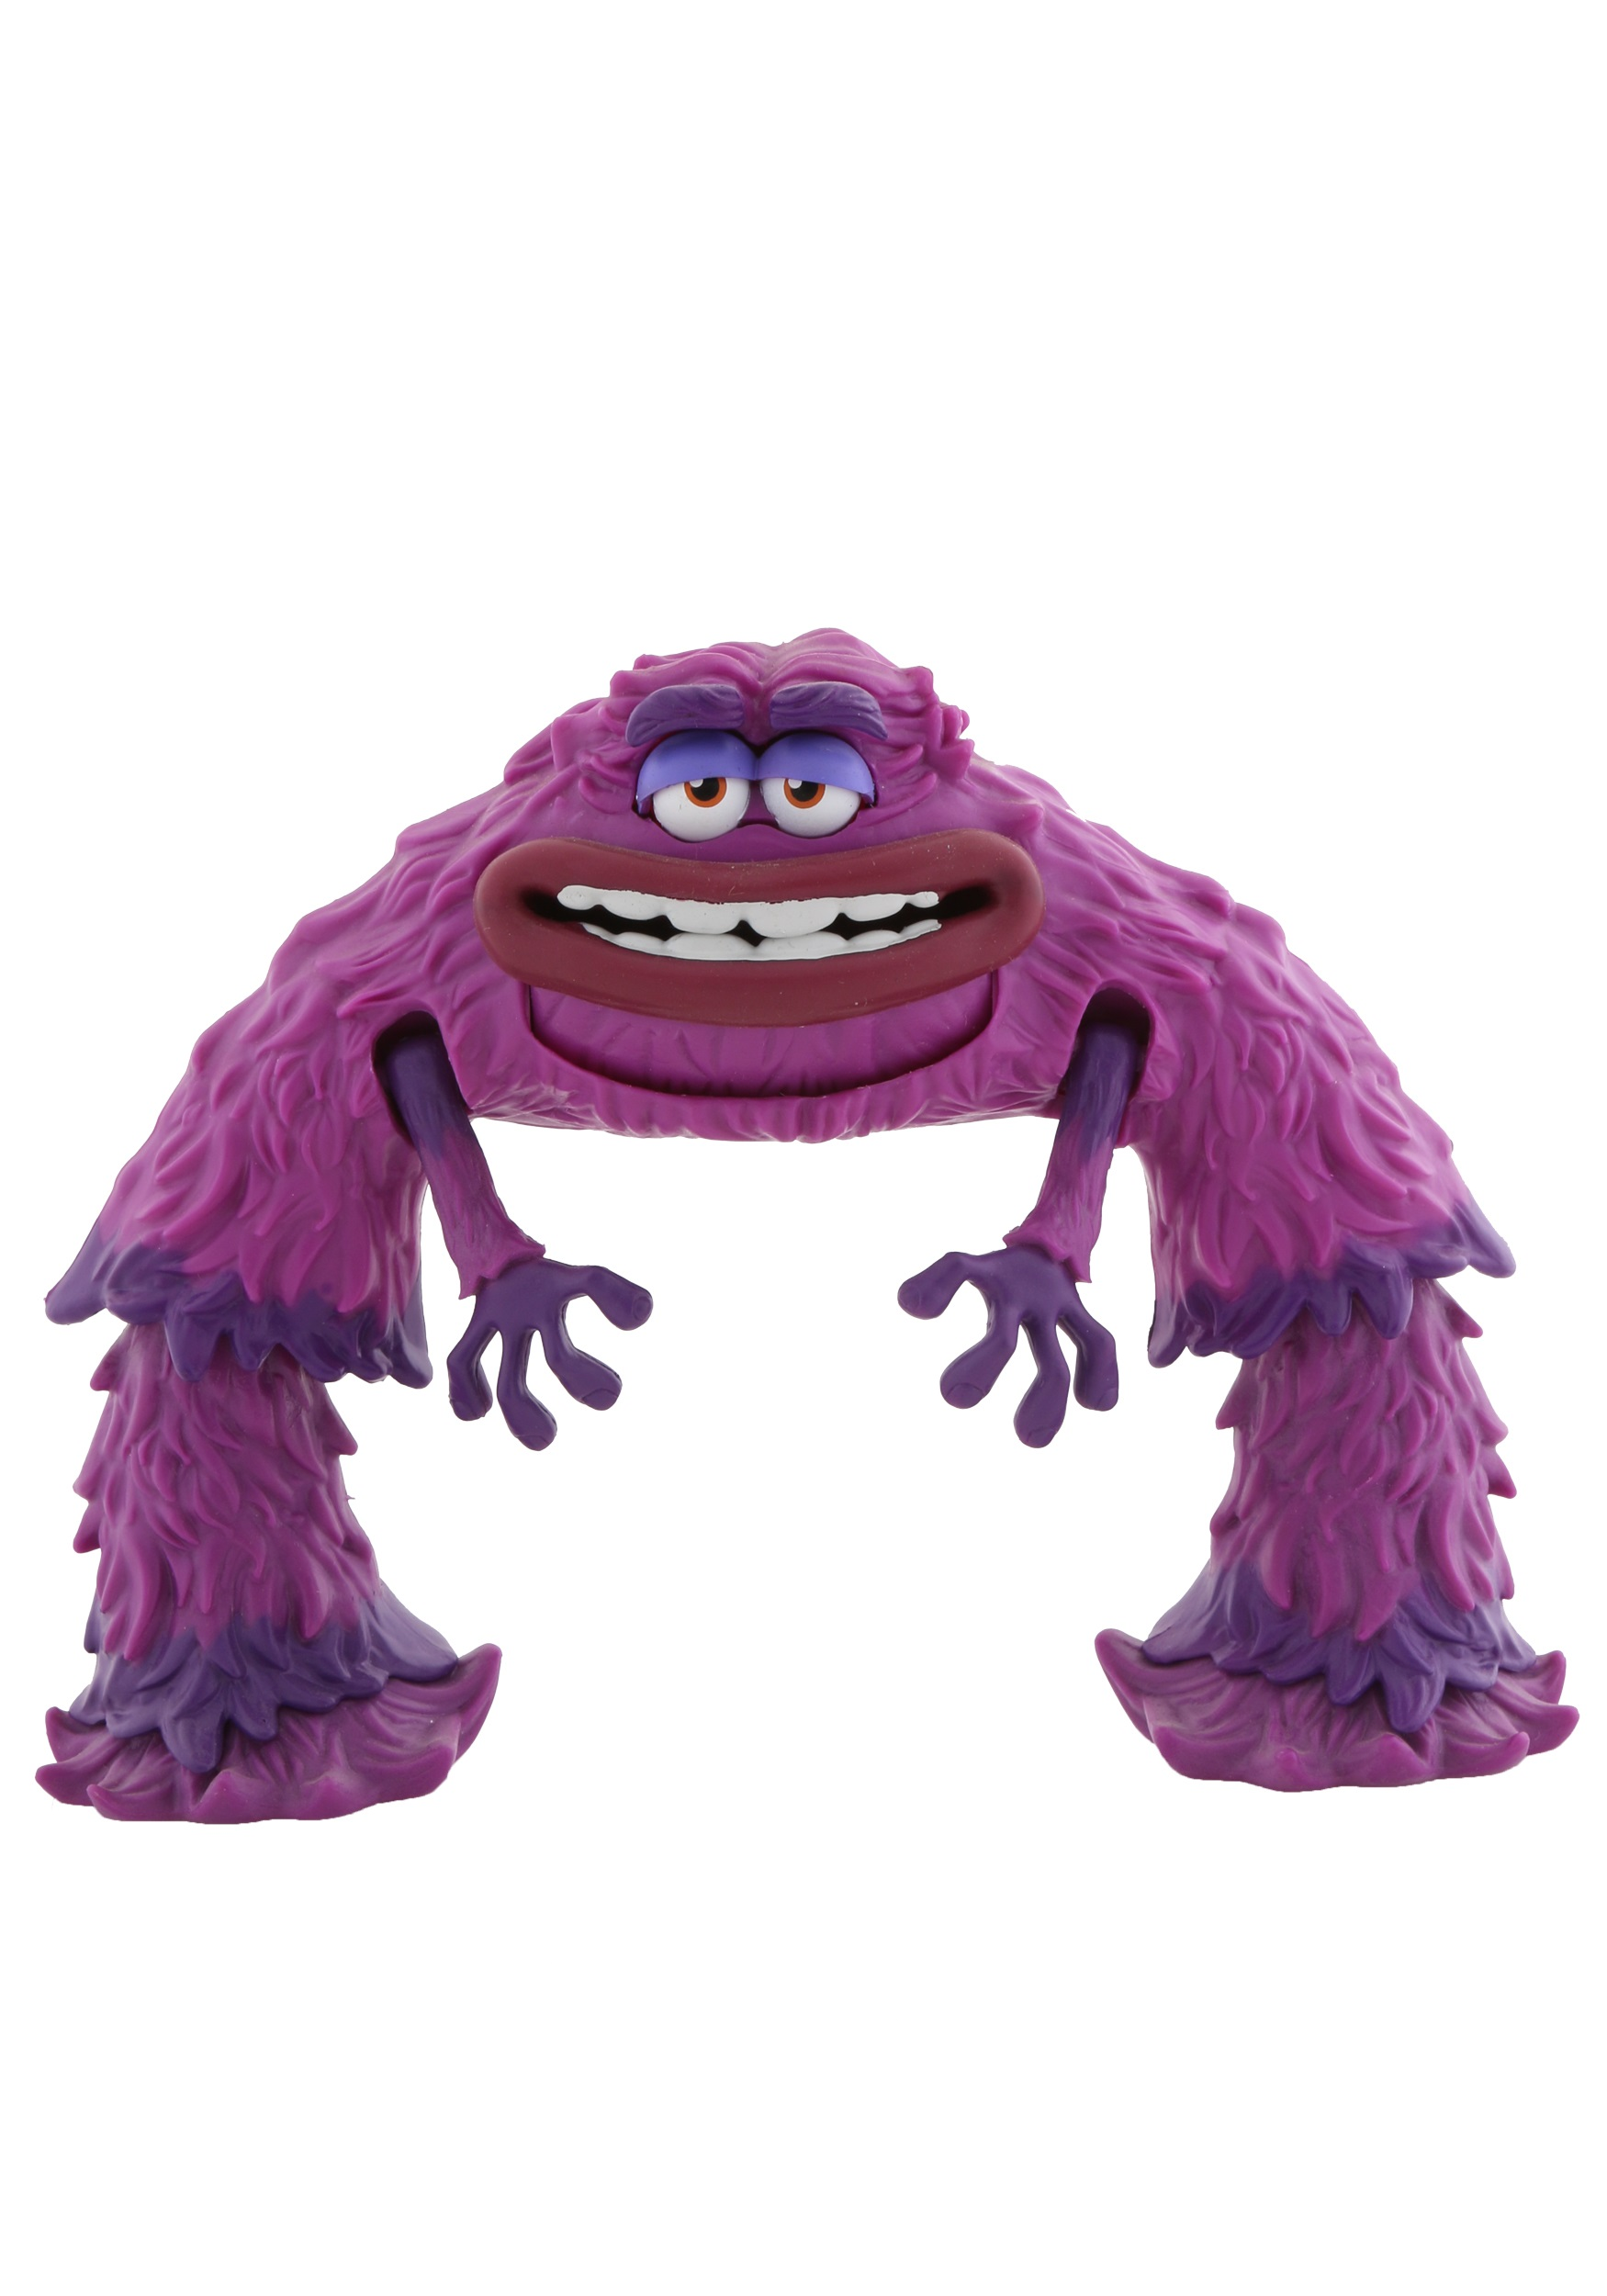 monsters university scare majors art figure